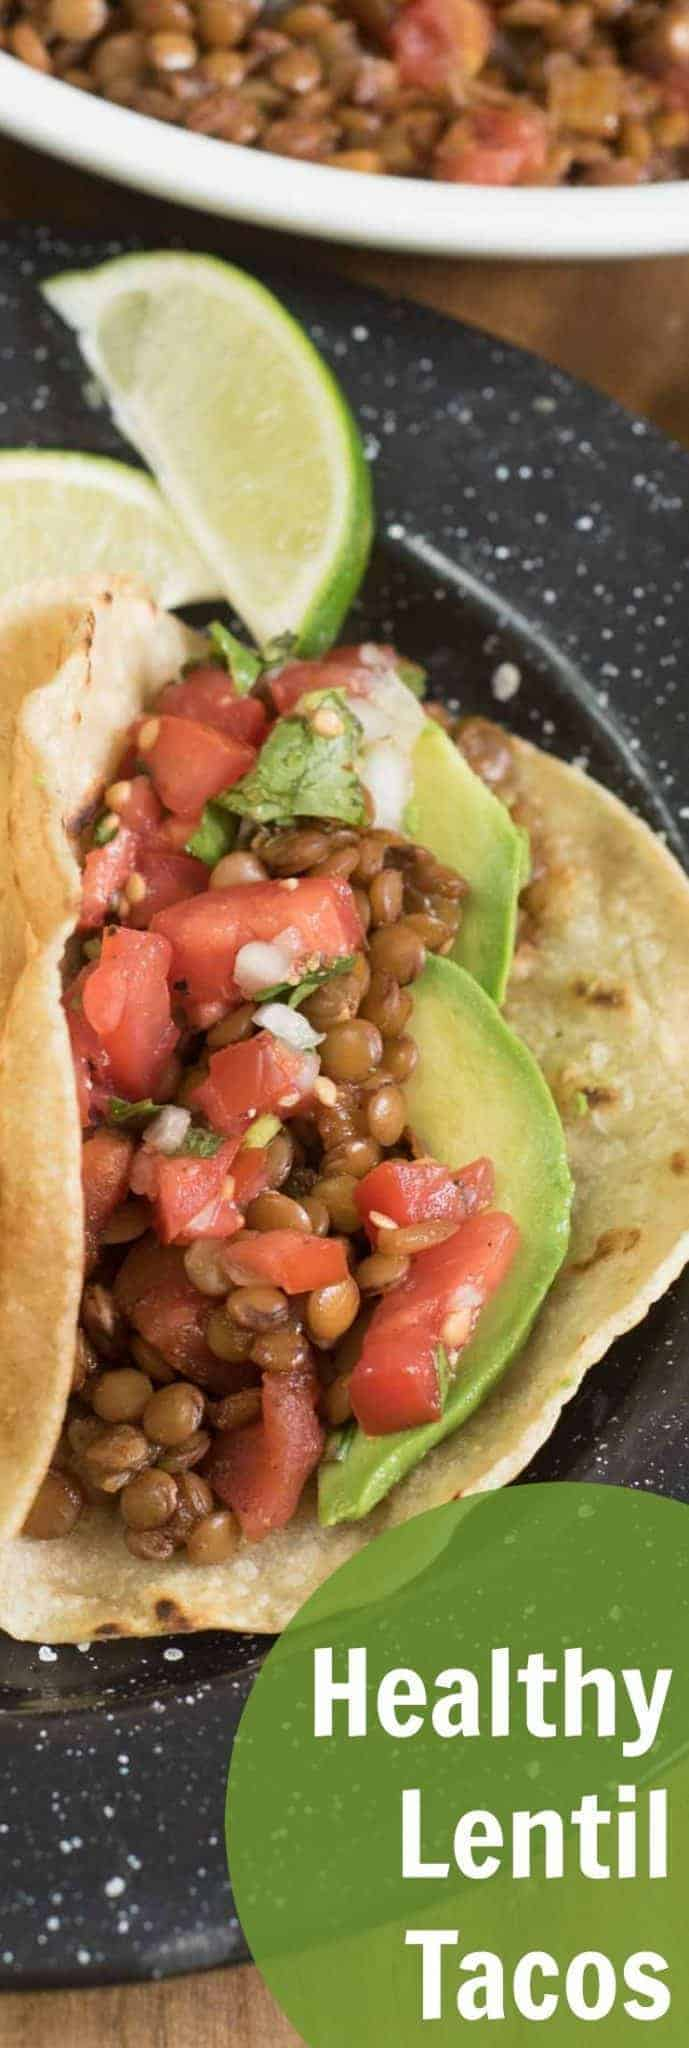 Quick, easy, and healthy lentil tacos are one of our favorite plant-based dinners the whole family loves.